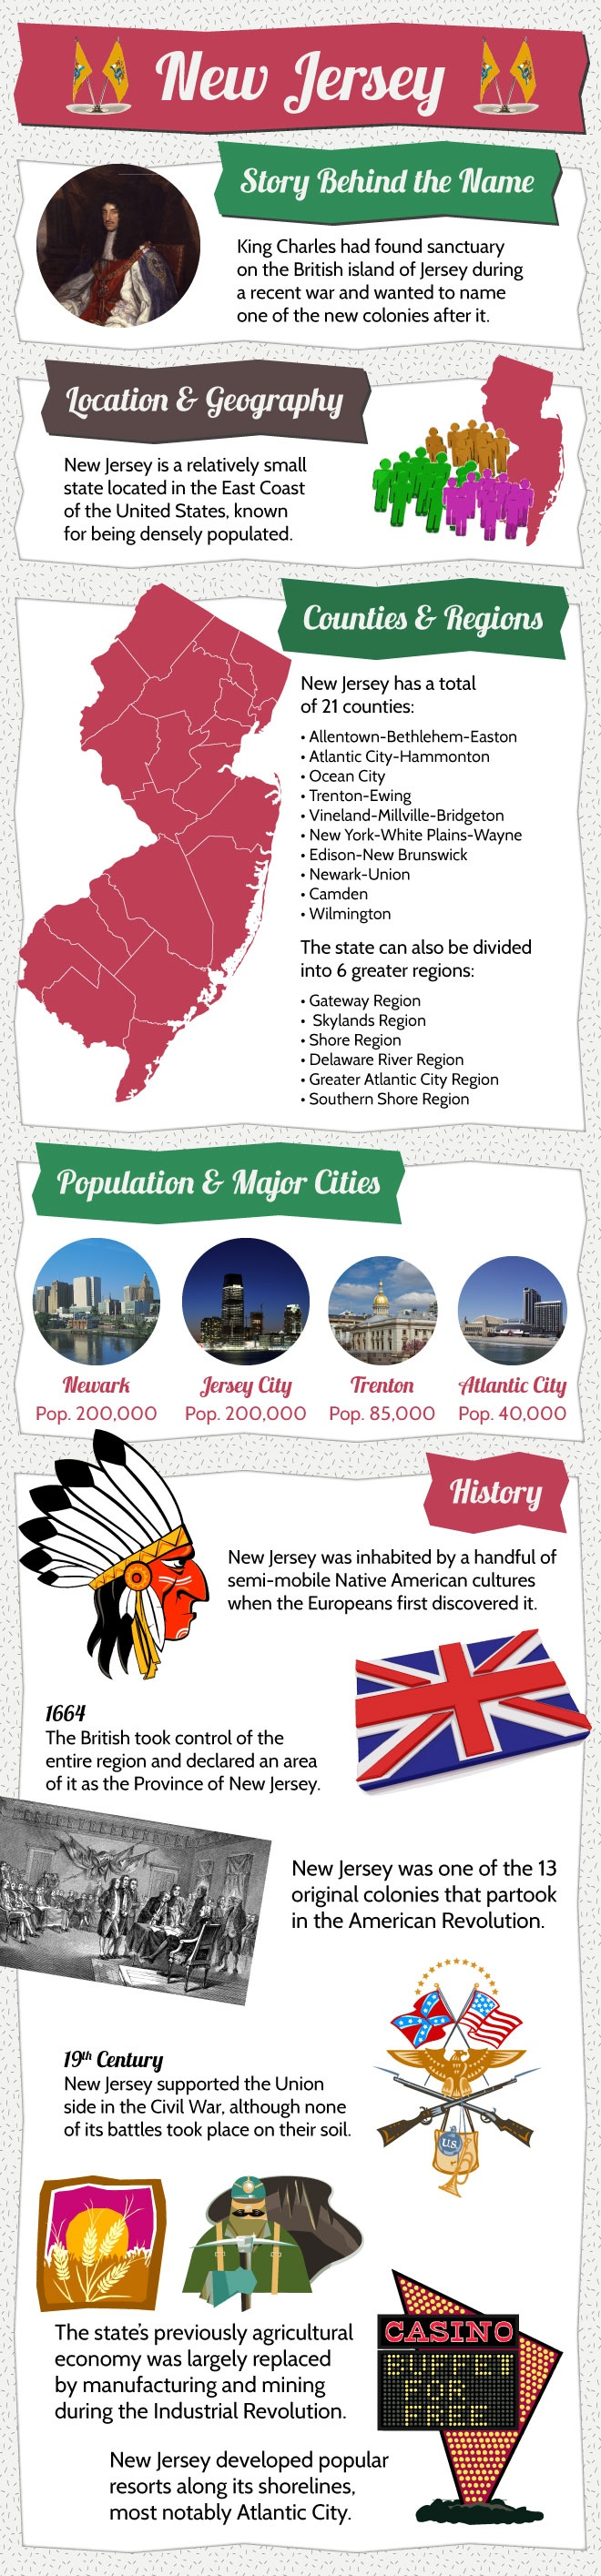 Infographic - New Jersey Facts